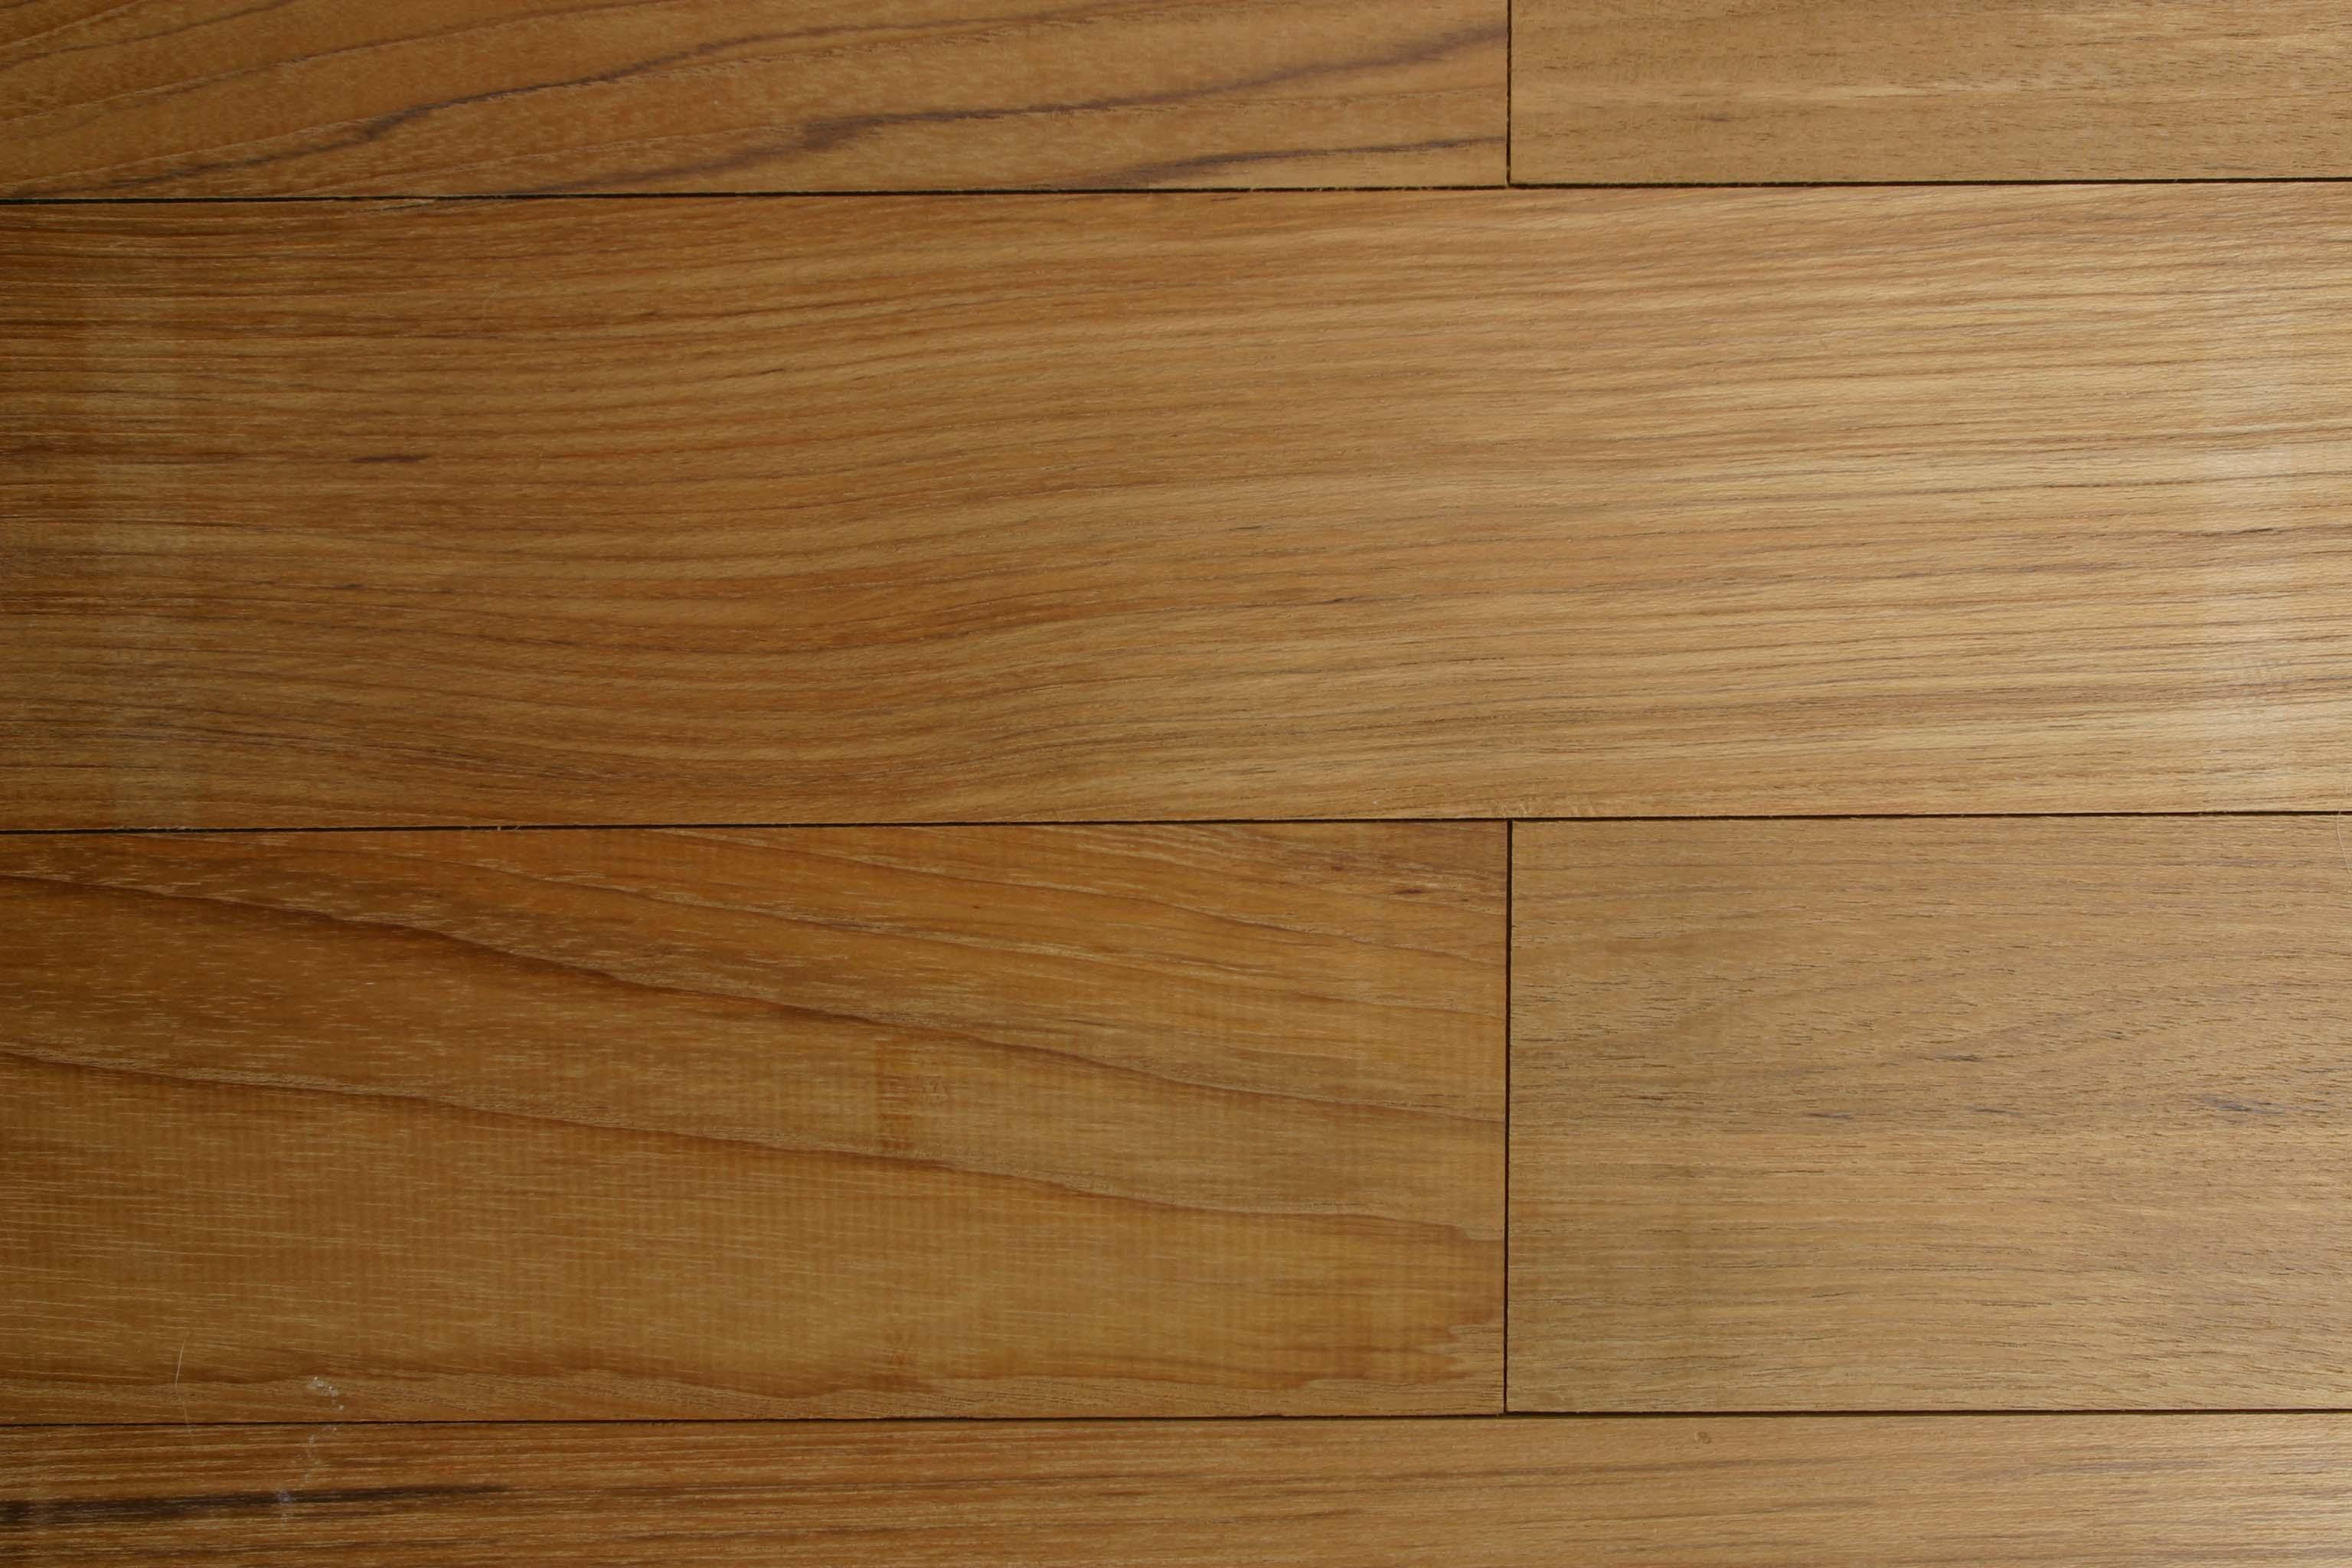 Teak hardwood flooring alyssamyers for Wood floor finishes